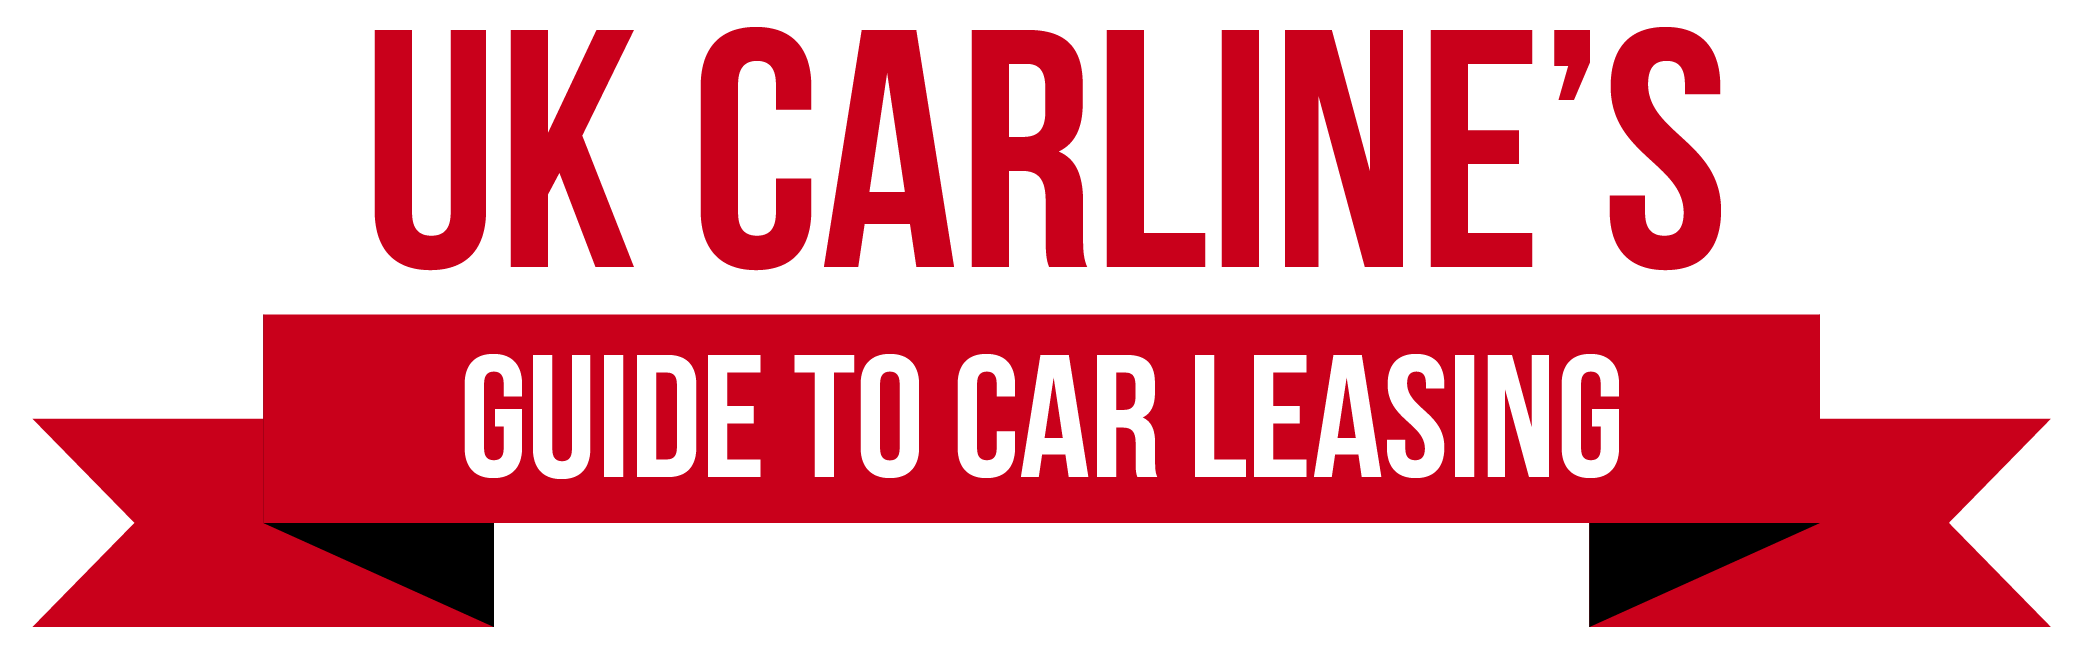 uk carline guide to car leasing